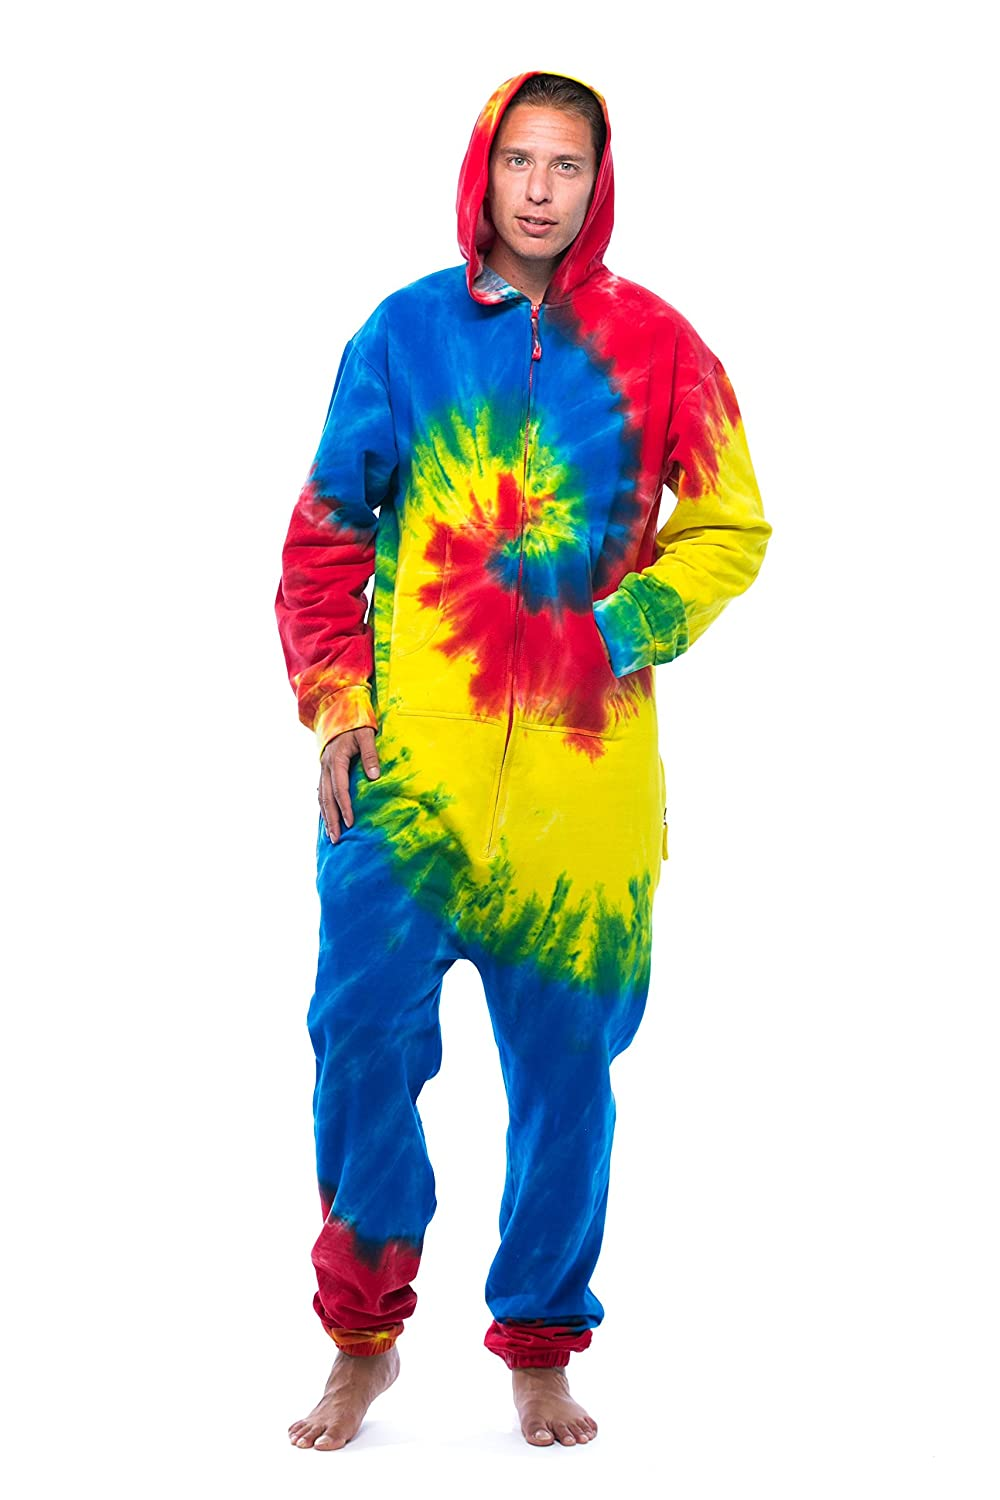 #followme Jumpsuit/Adult Onesie/Pajamas